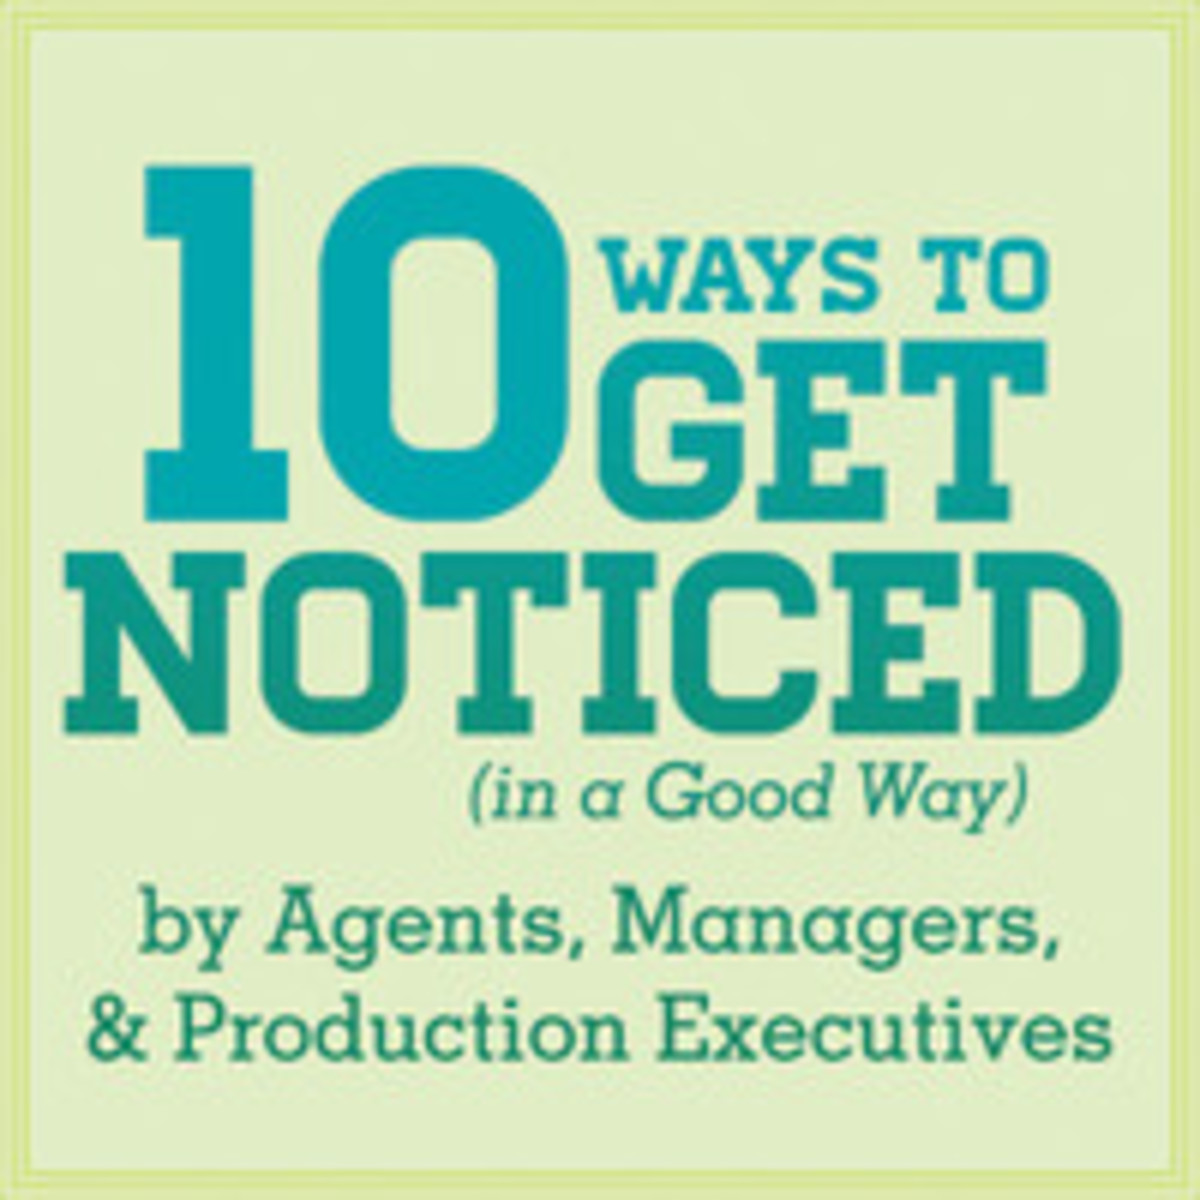 10 Ways to Get Noticed by Agents, Managers, & Production Executives